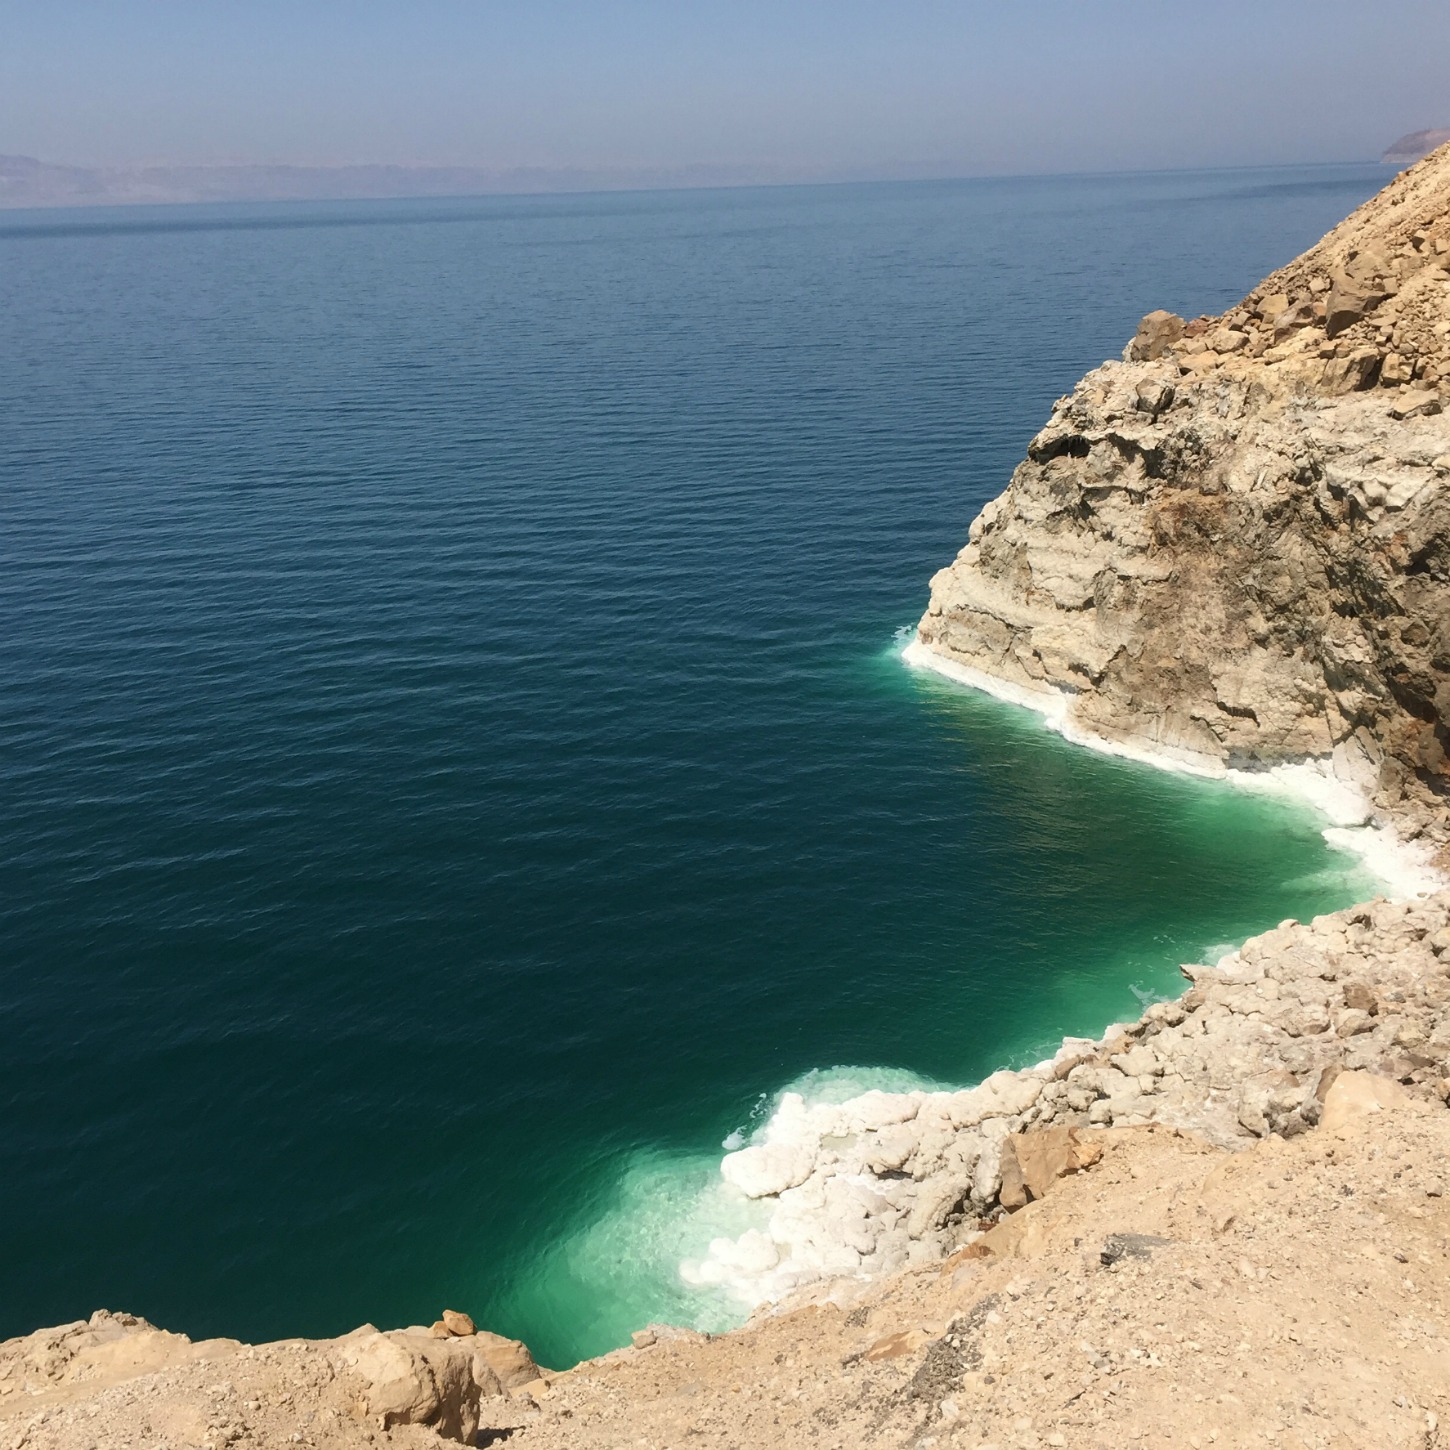 Beholding the Dead Sea in Jordan - immersive travel at its finest!